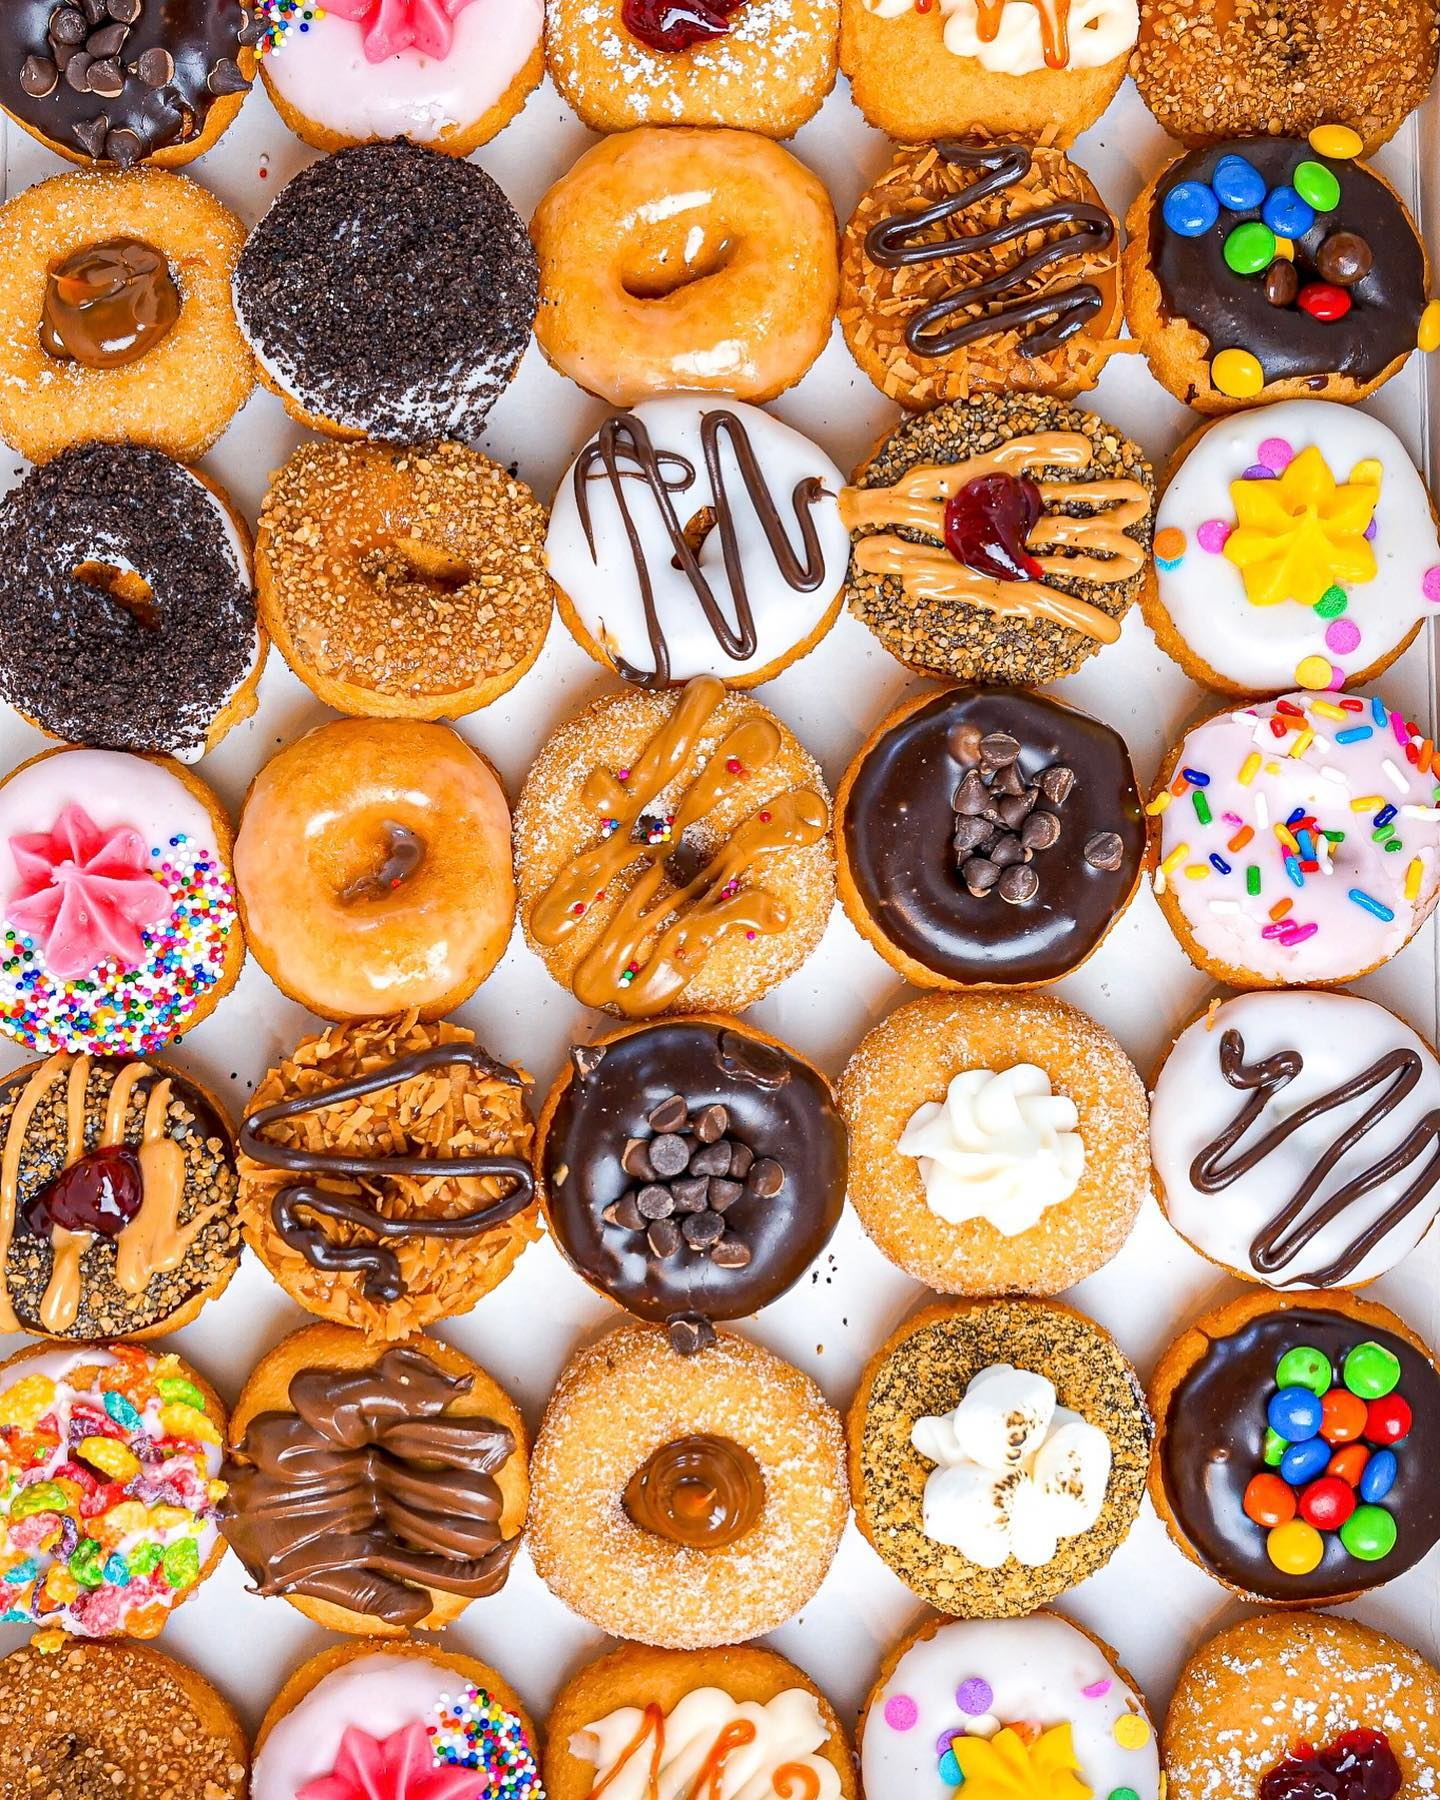 Doughnuts lined up five across